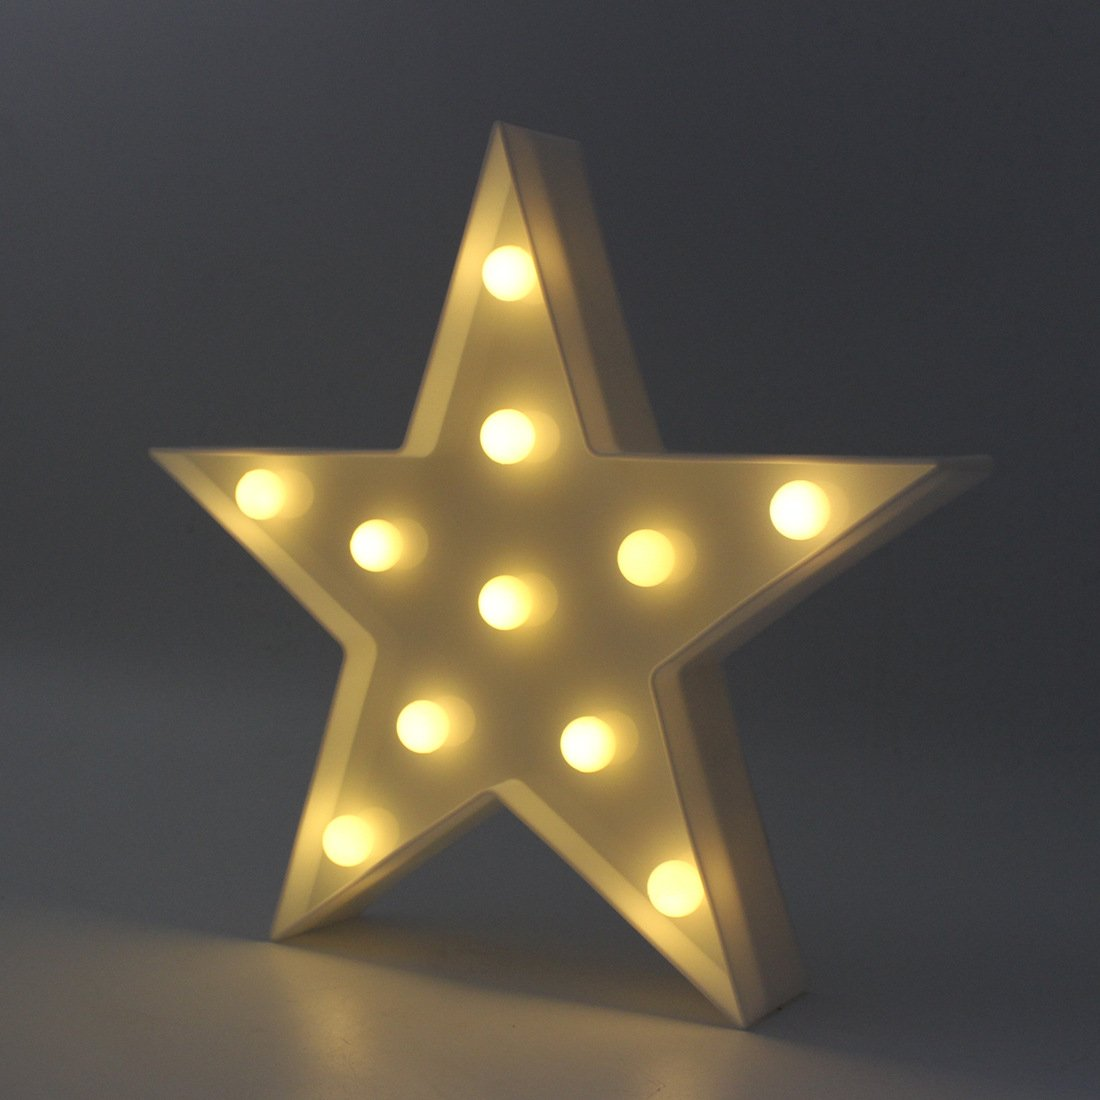 LED Star Light,Cute Star Night Table Lamp Light for Kids' Room Bedroom Gift Party Home Decorations White Color